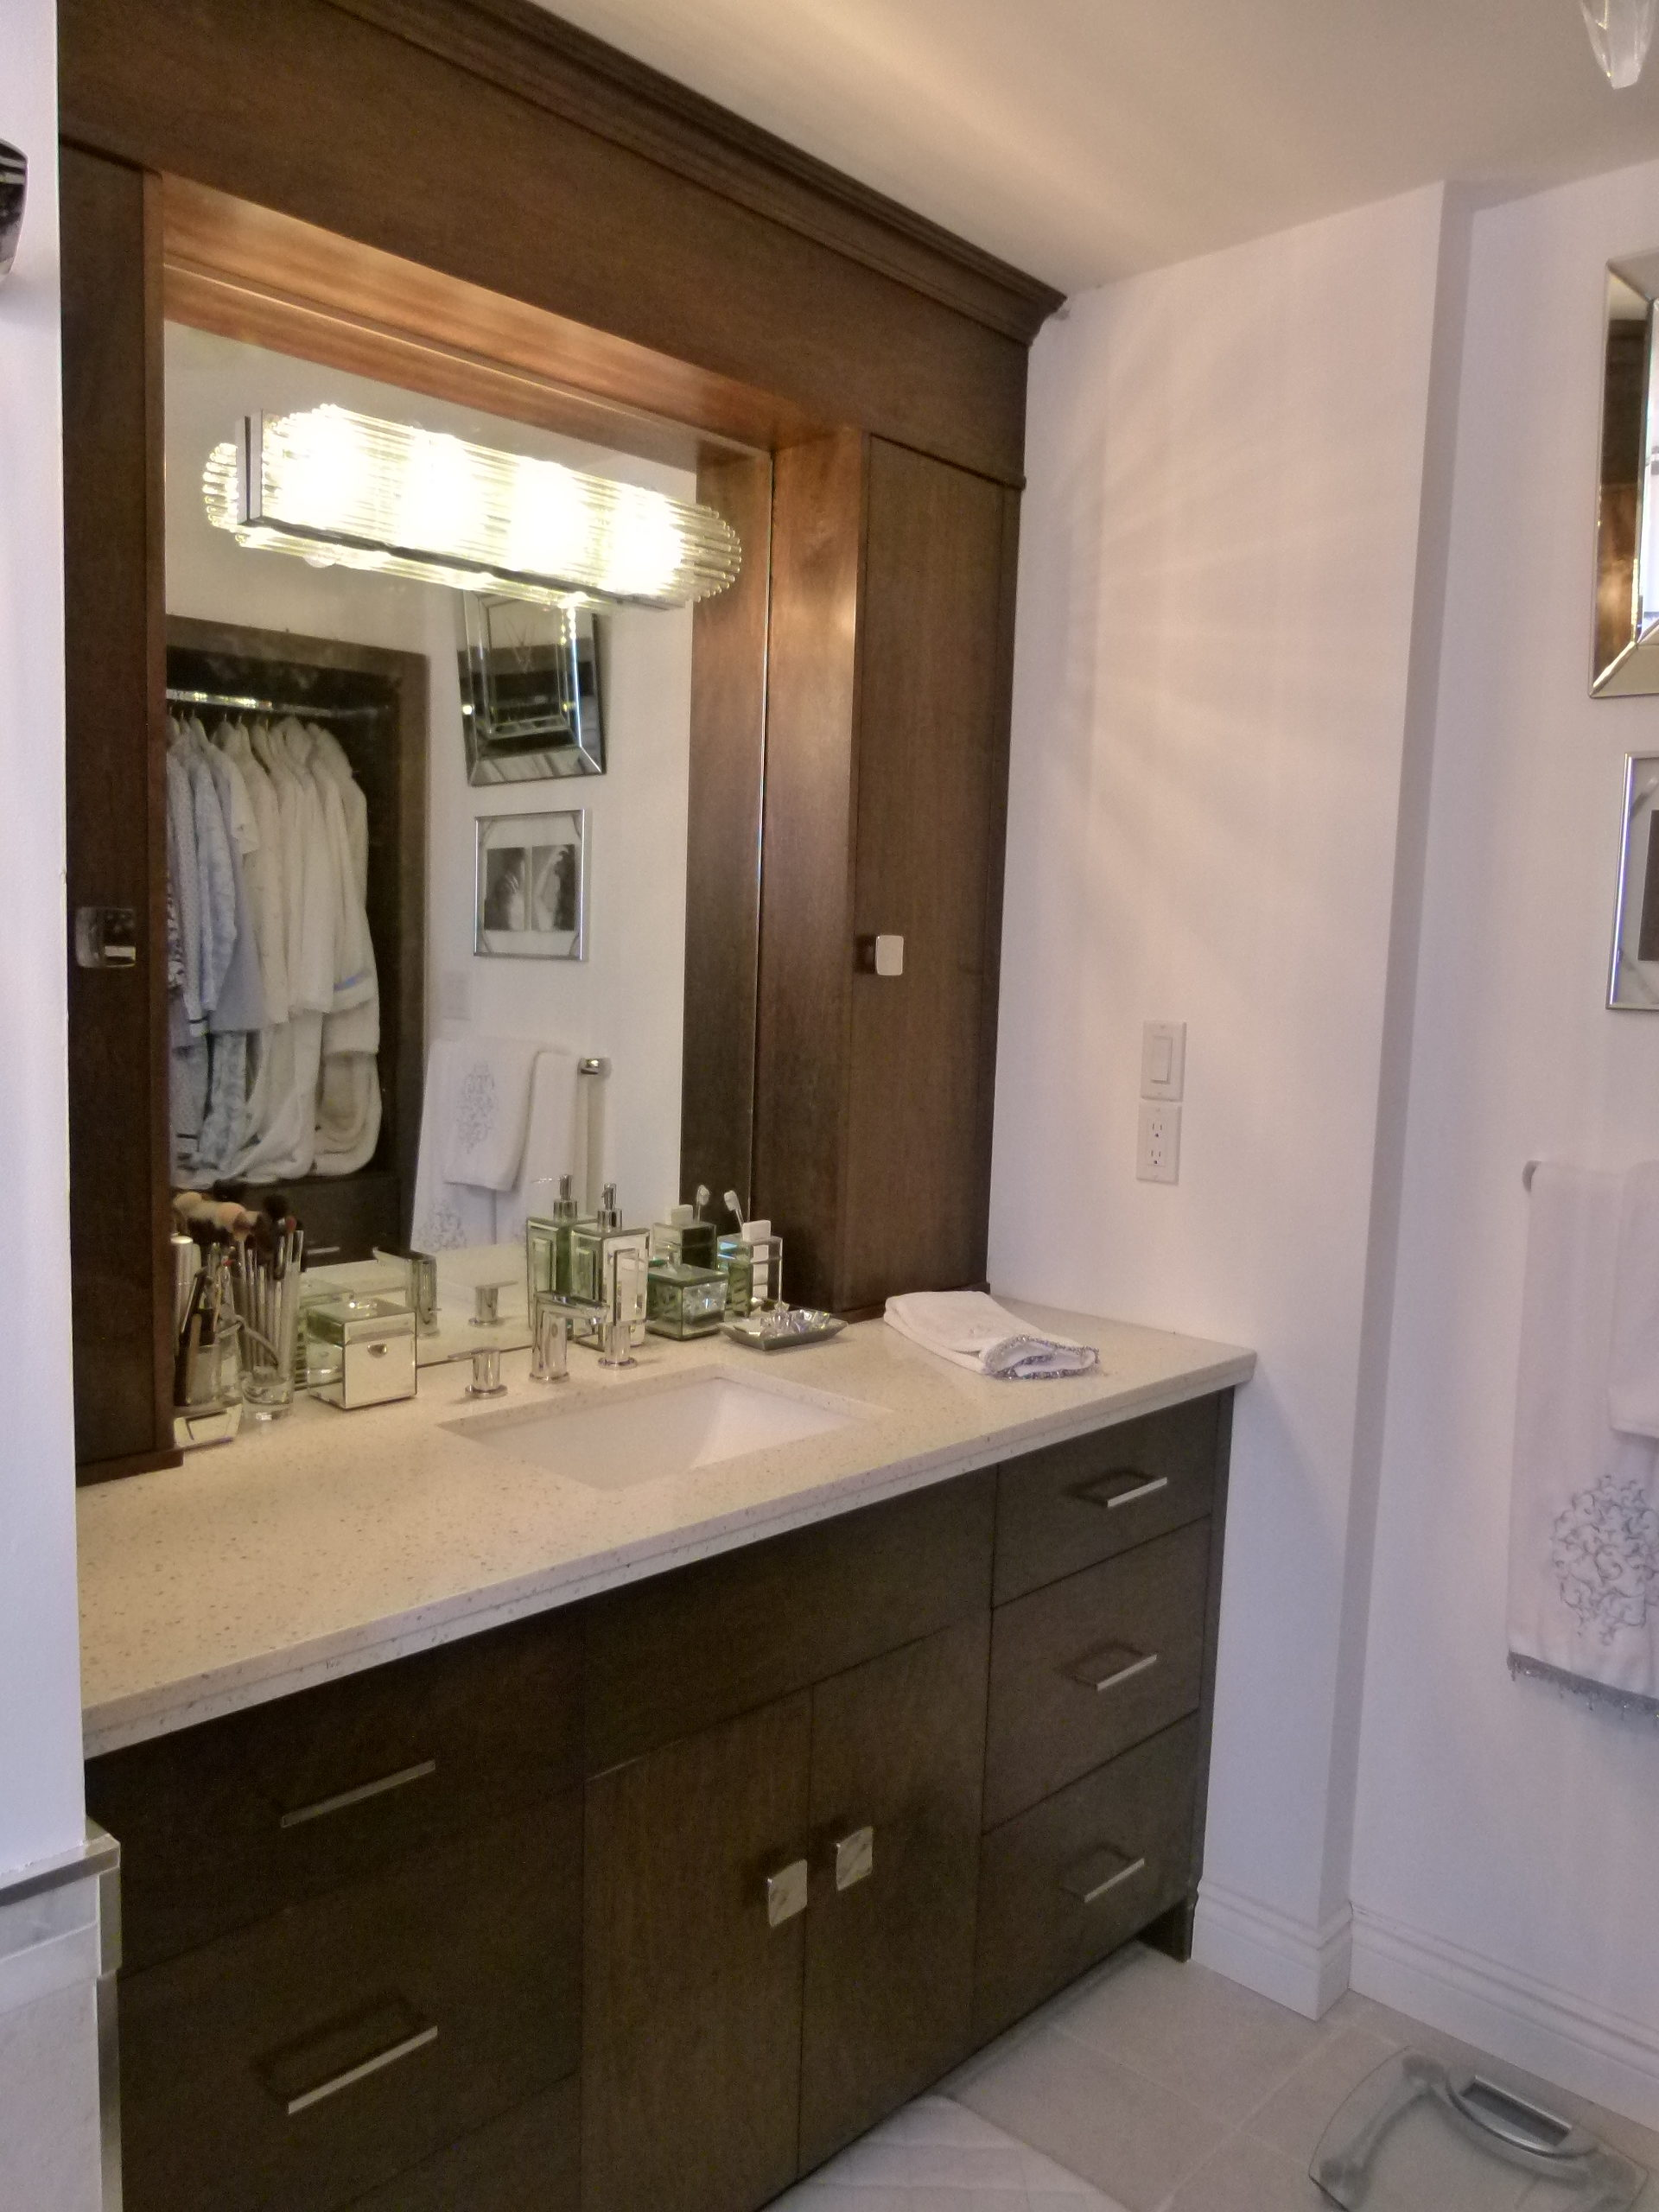 Silhouette Custom Cabinets - Cabinets, Kitchens, Closets ...